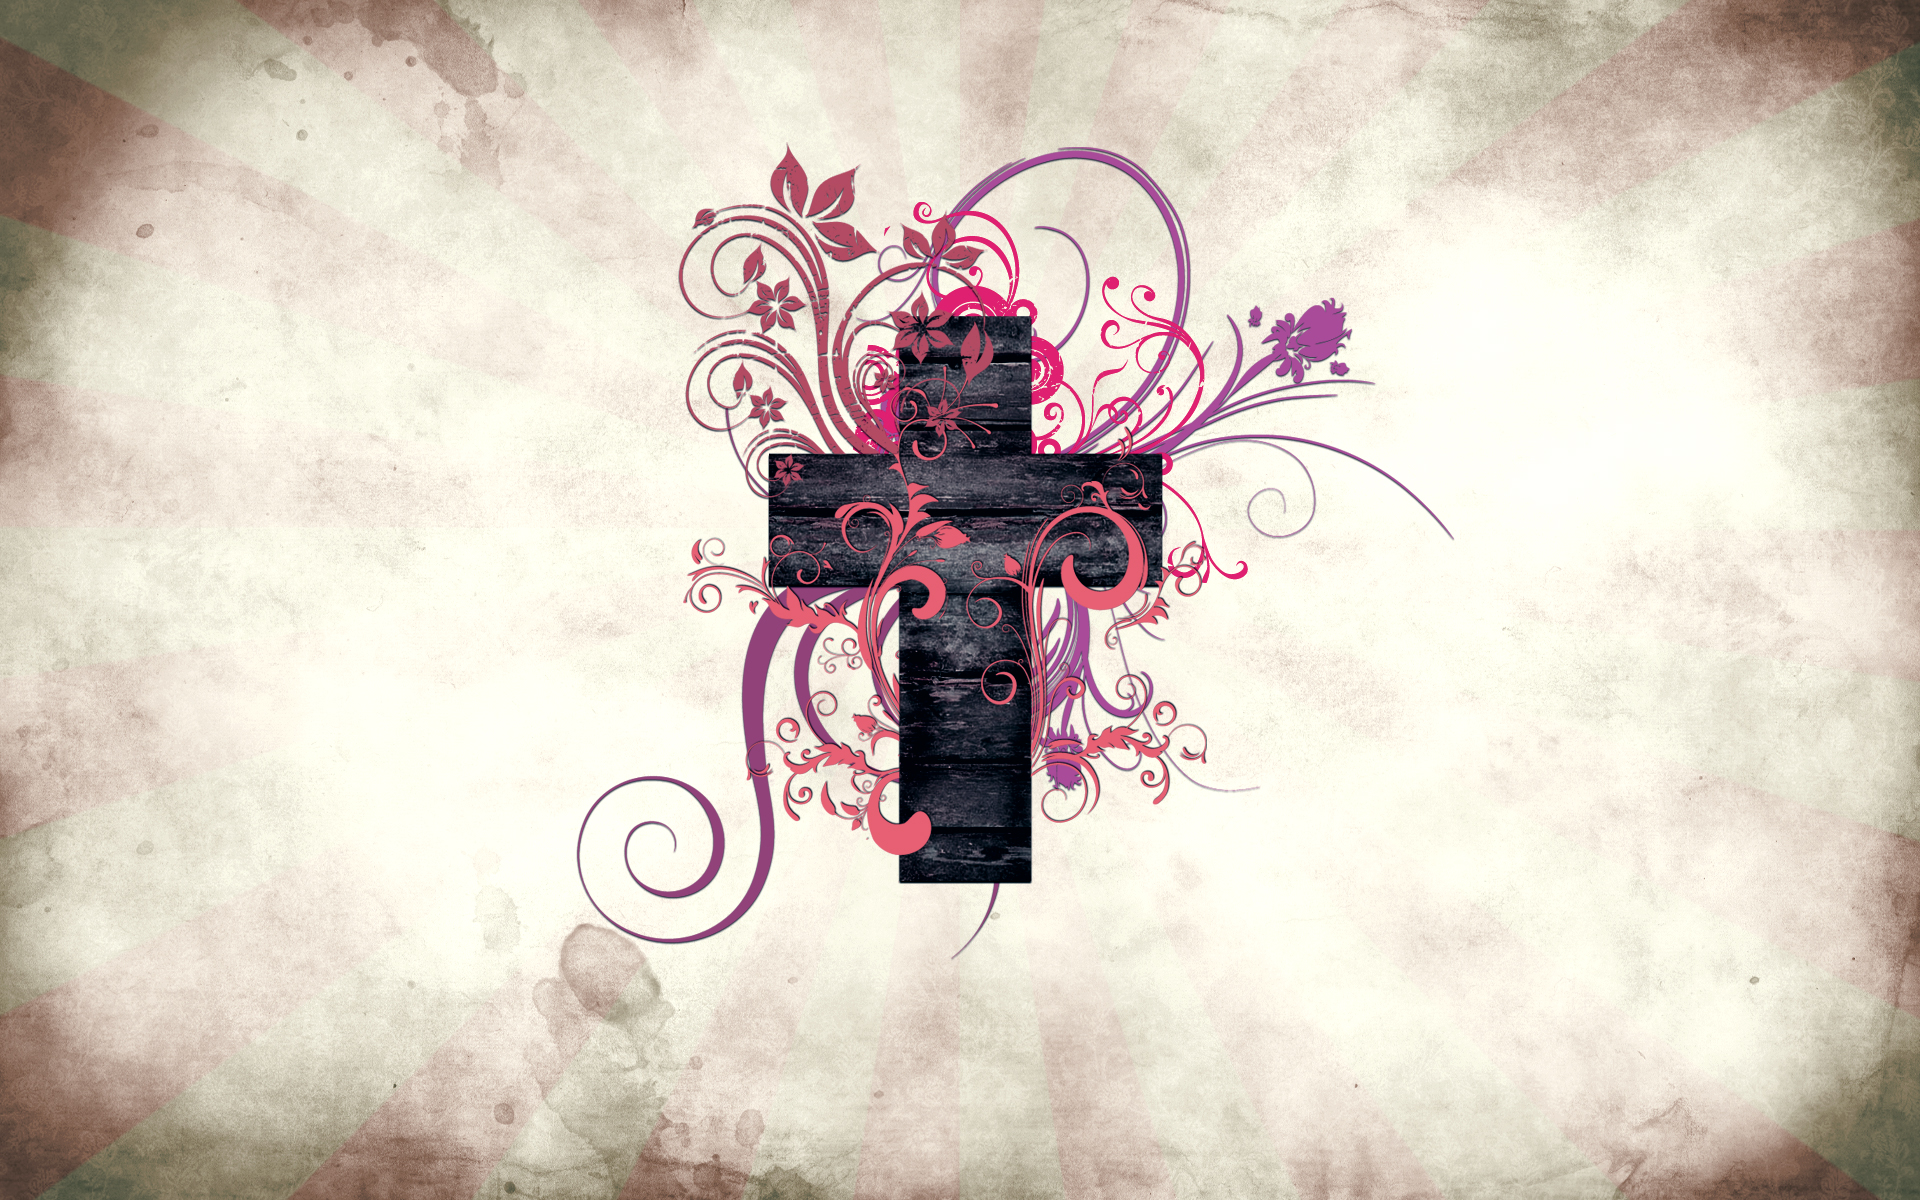 Abstract Cross Art Exclusive HD Wallpapers 1917 1920x1200